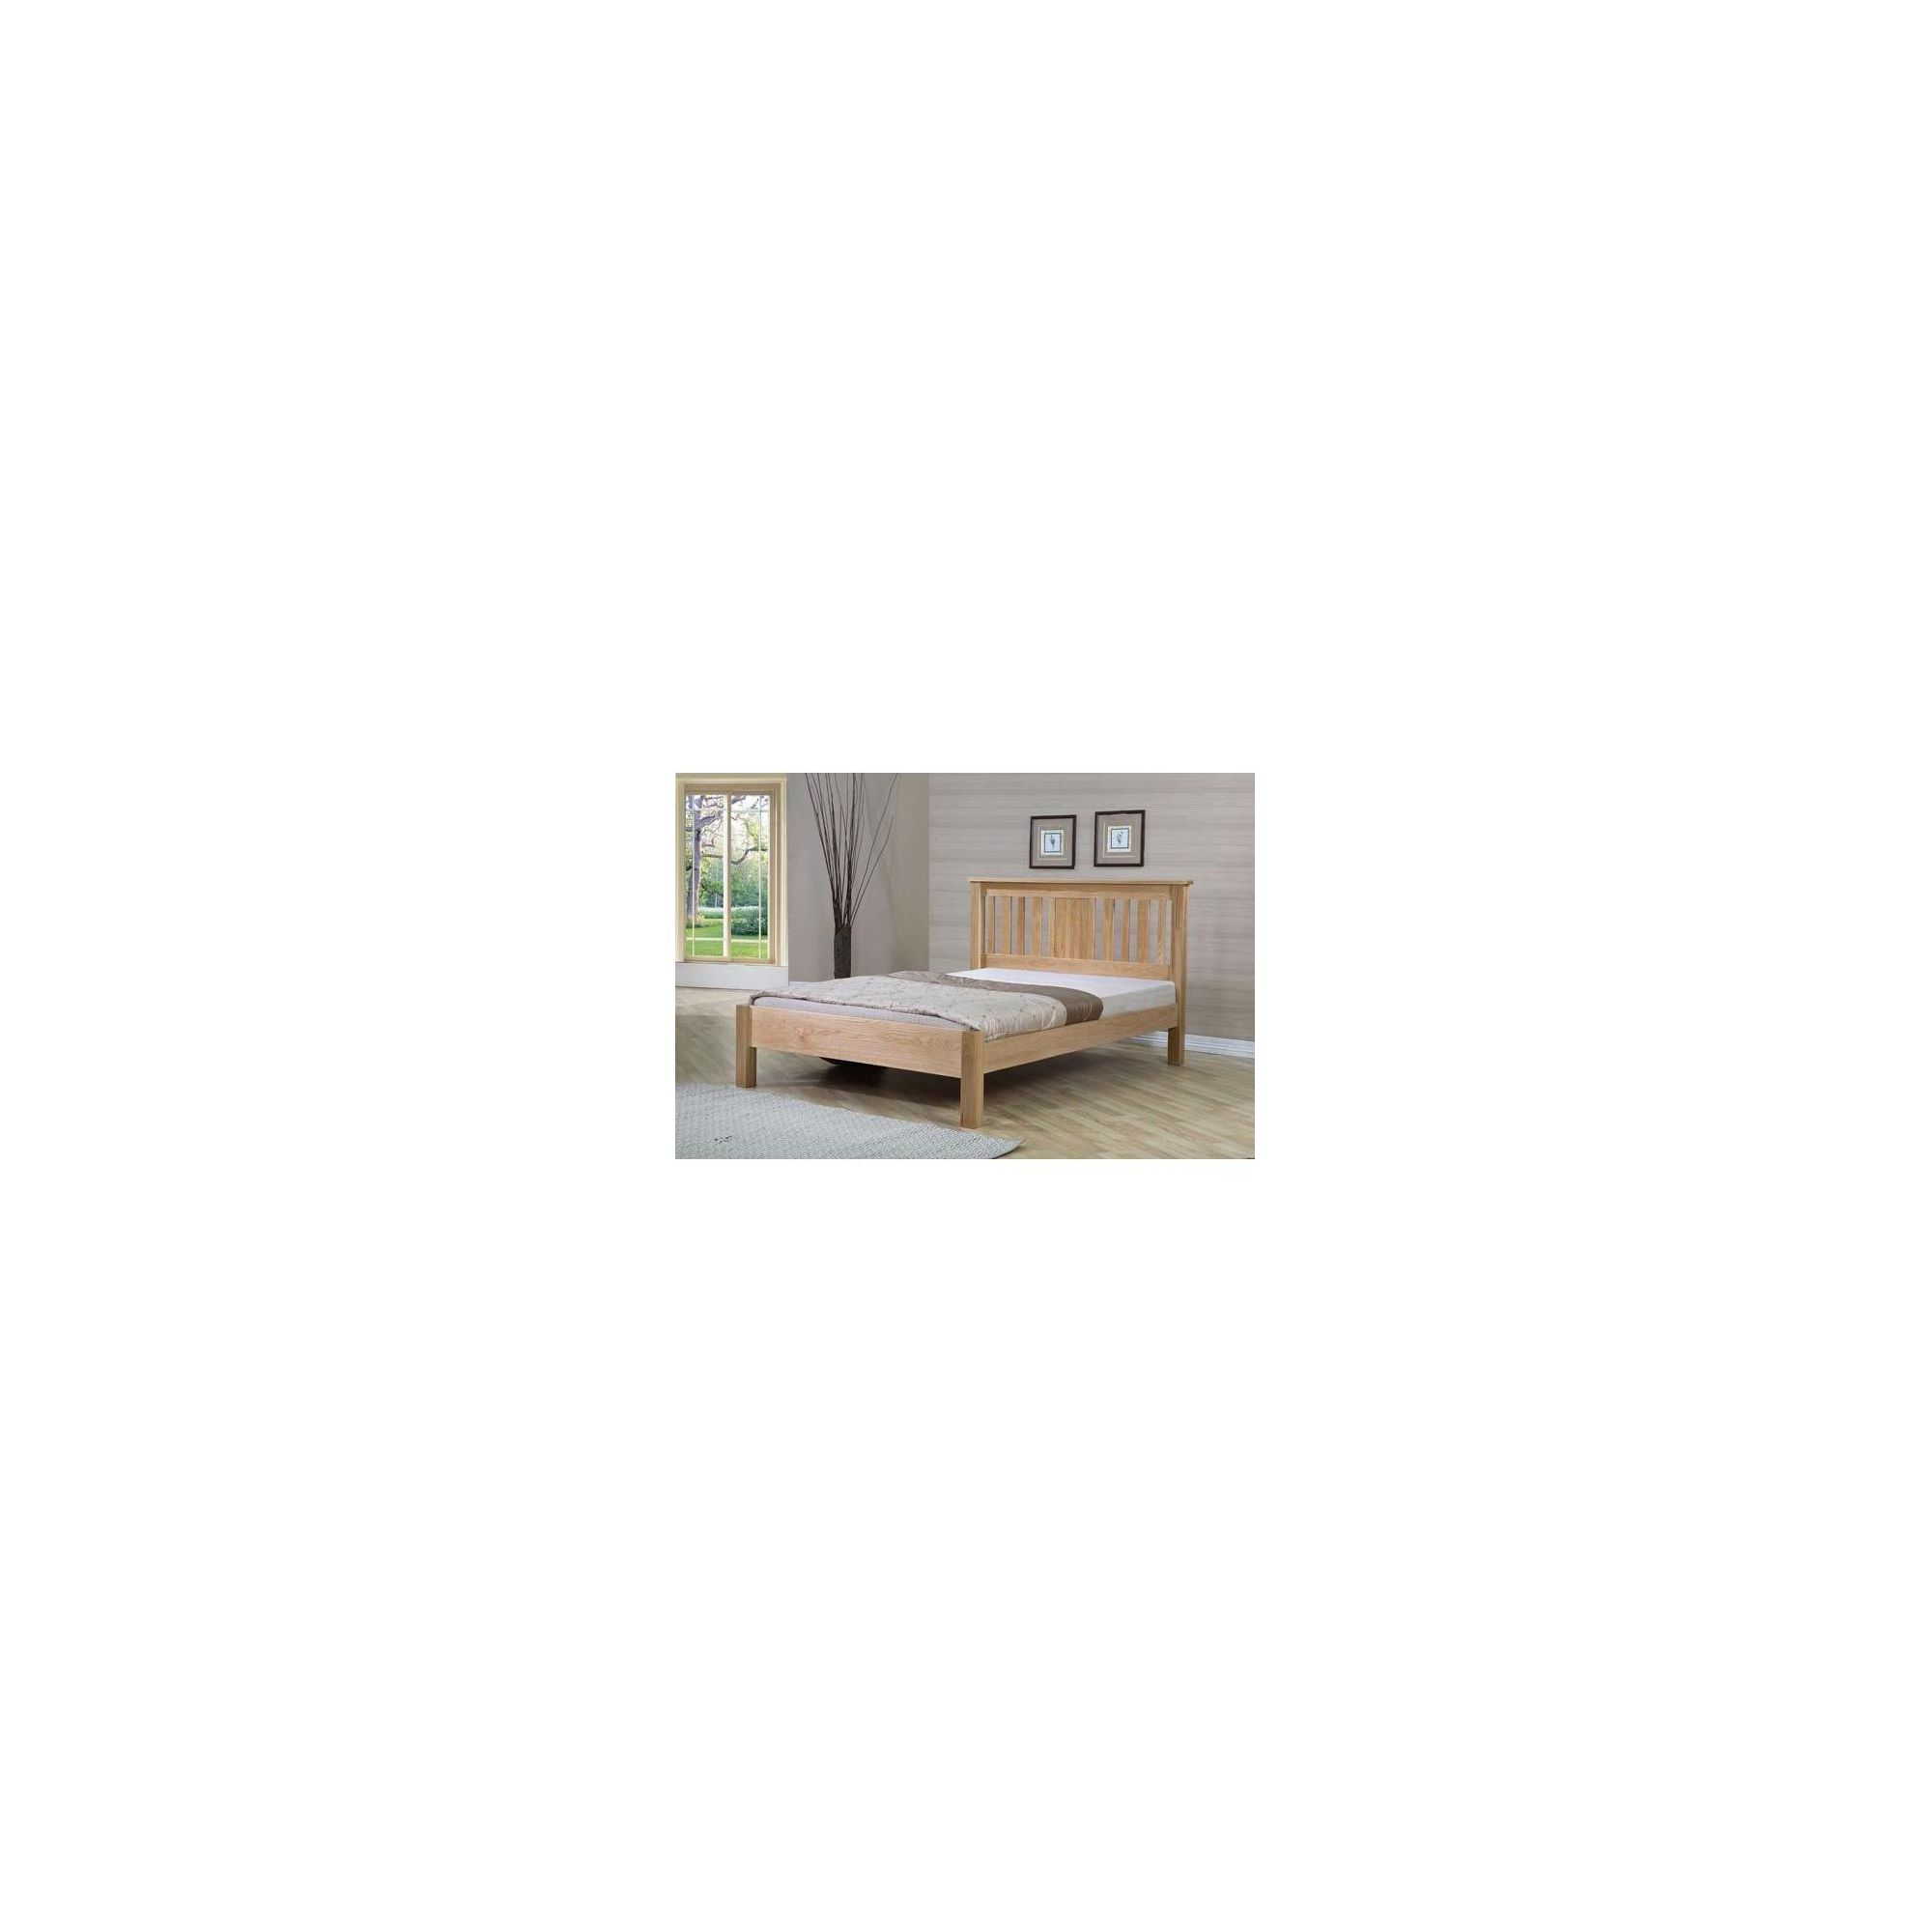 Sleepy Valley Oregon Bed - Single - No Drawers at Tesco Direct